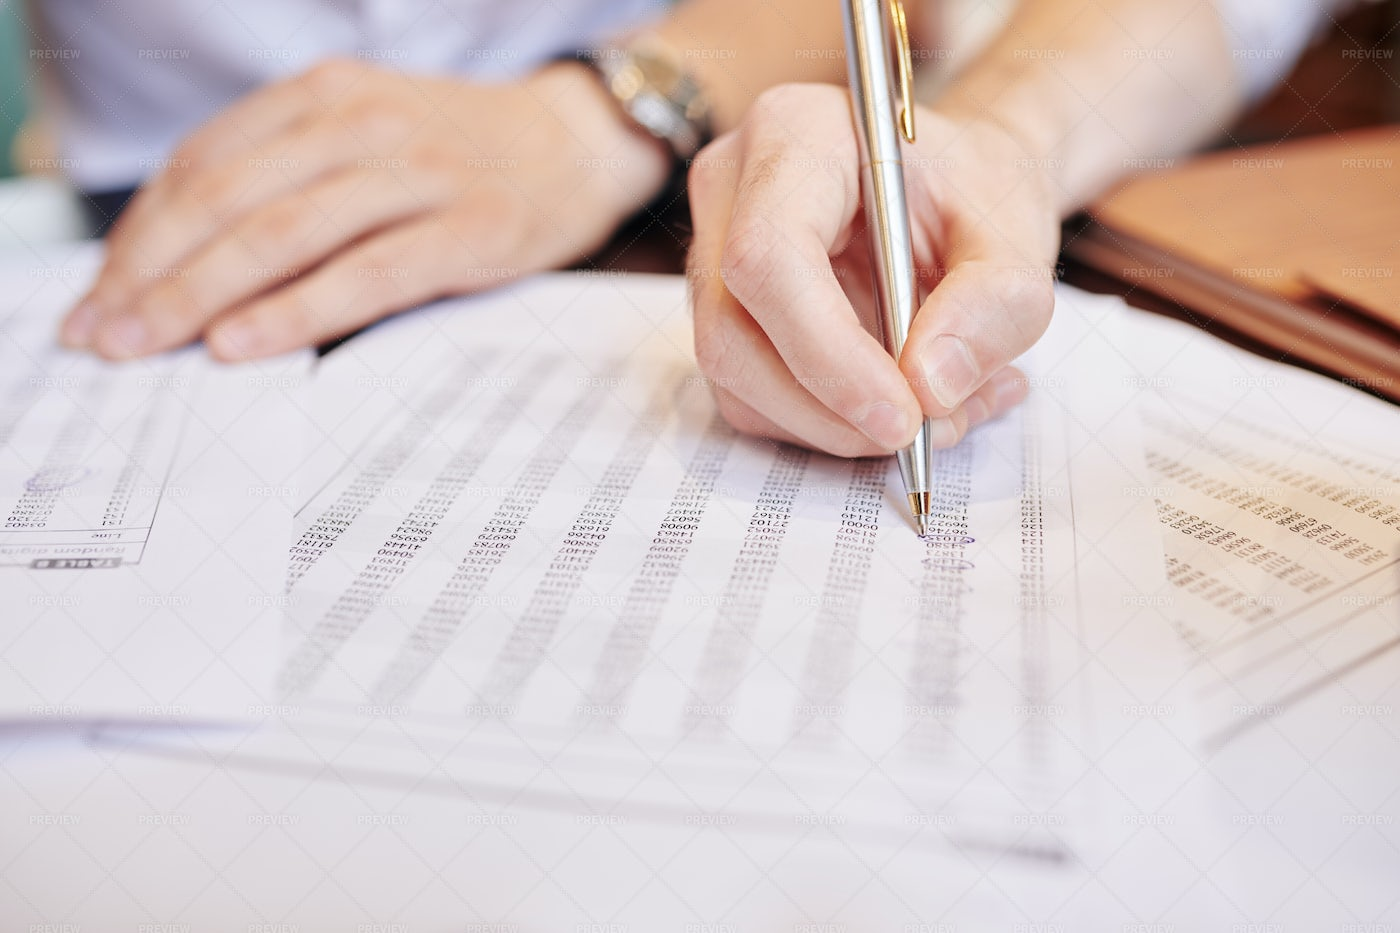 Business People Analyzing Document With: Stock Photos